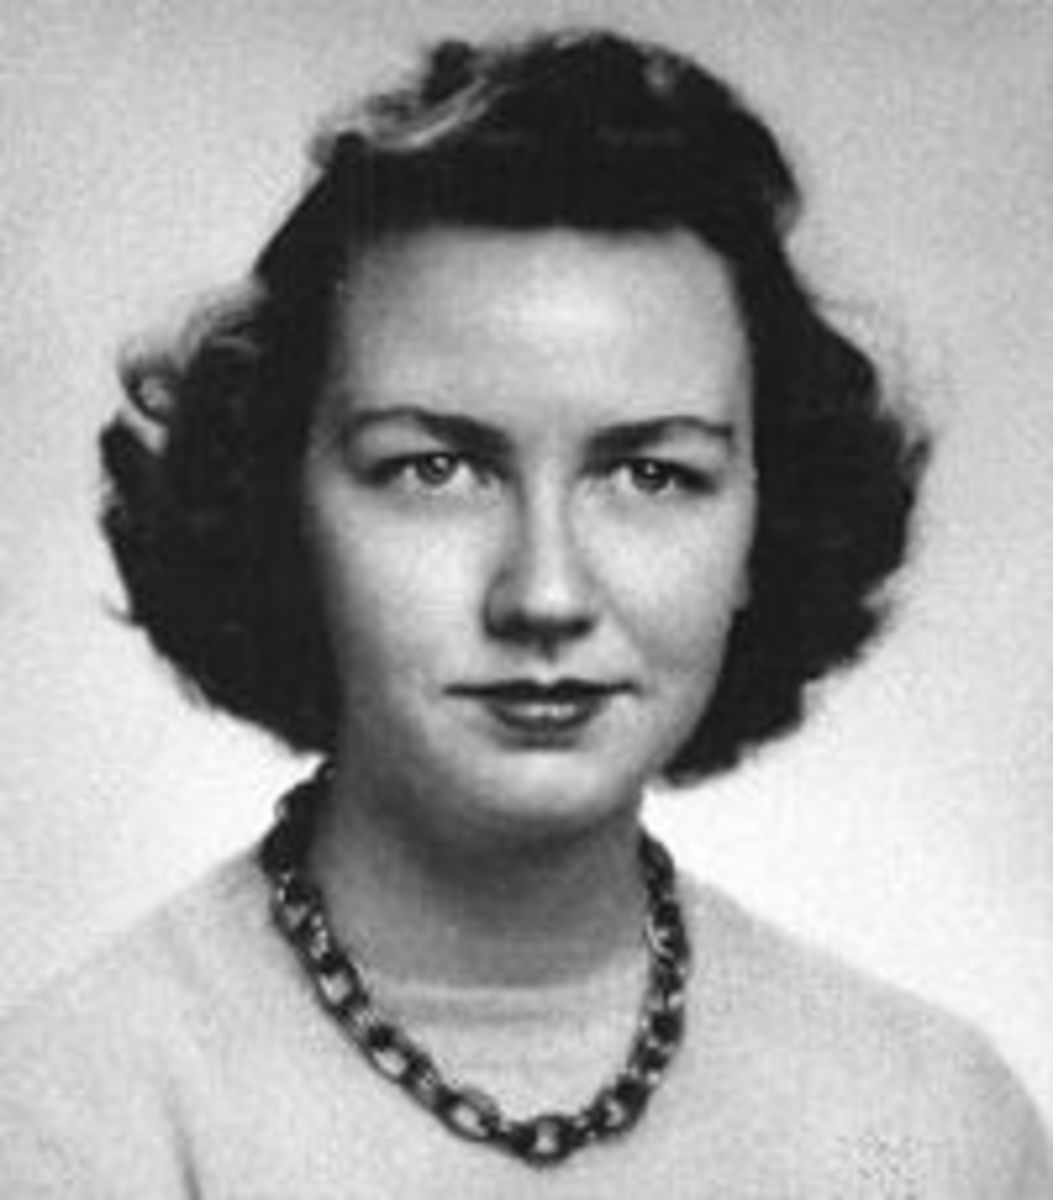 A Sense of Mystery: The Writing and Style of Flannery O'Connor